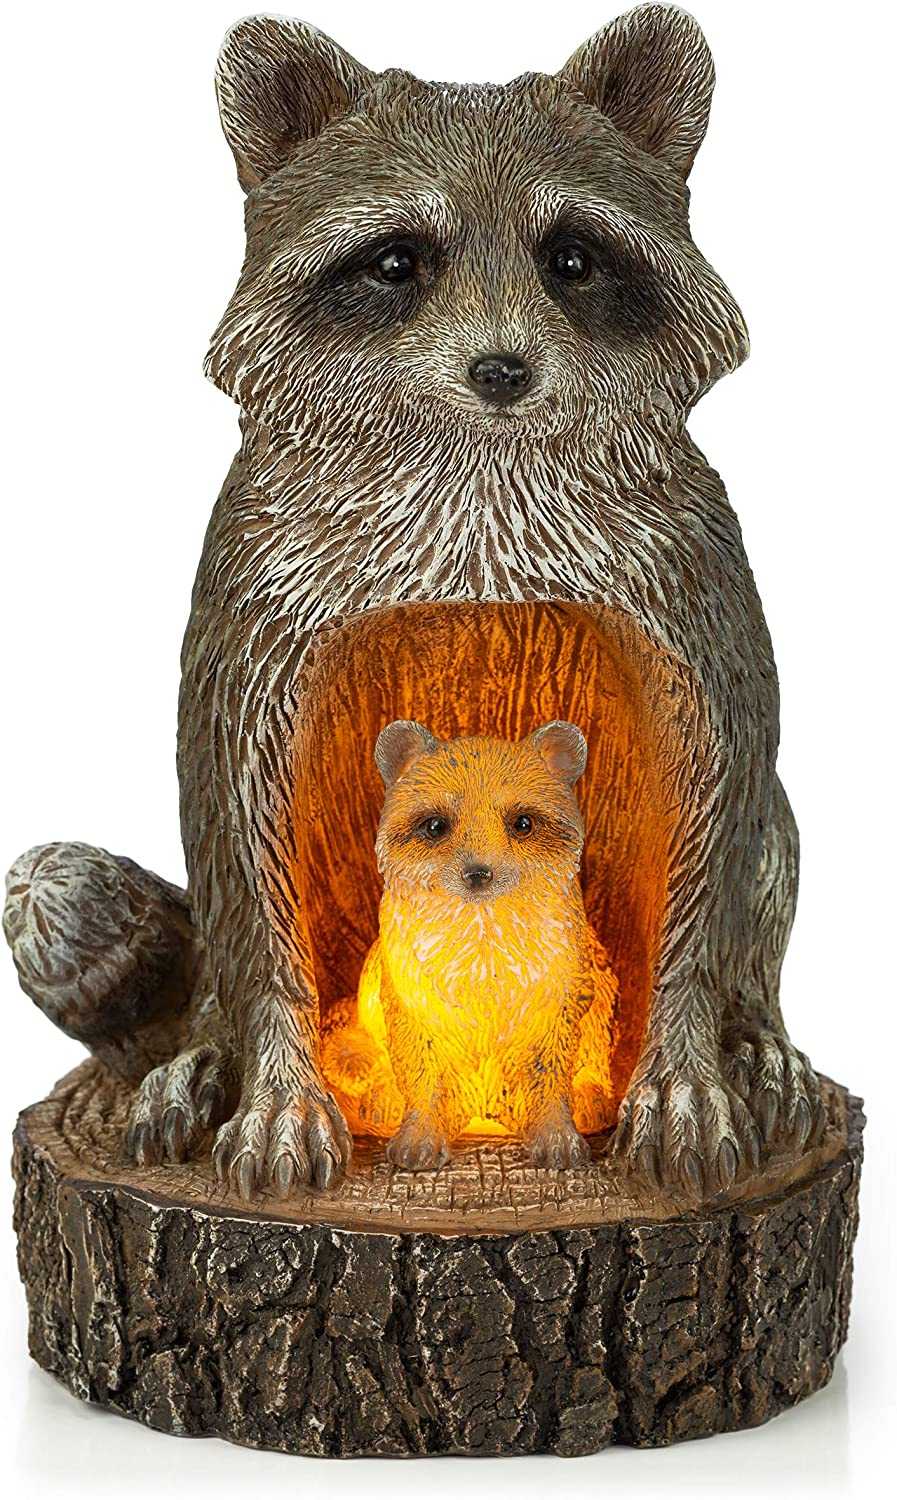 VP Home Mom and Baby Rustic Raccoons Solar Powered LED Outdoor Decor Garden Light